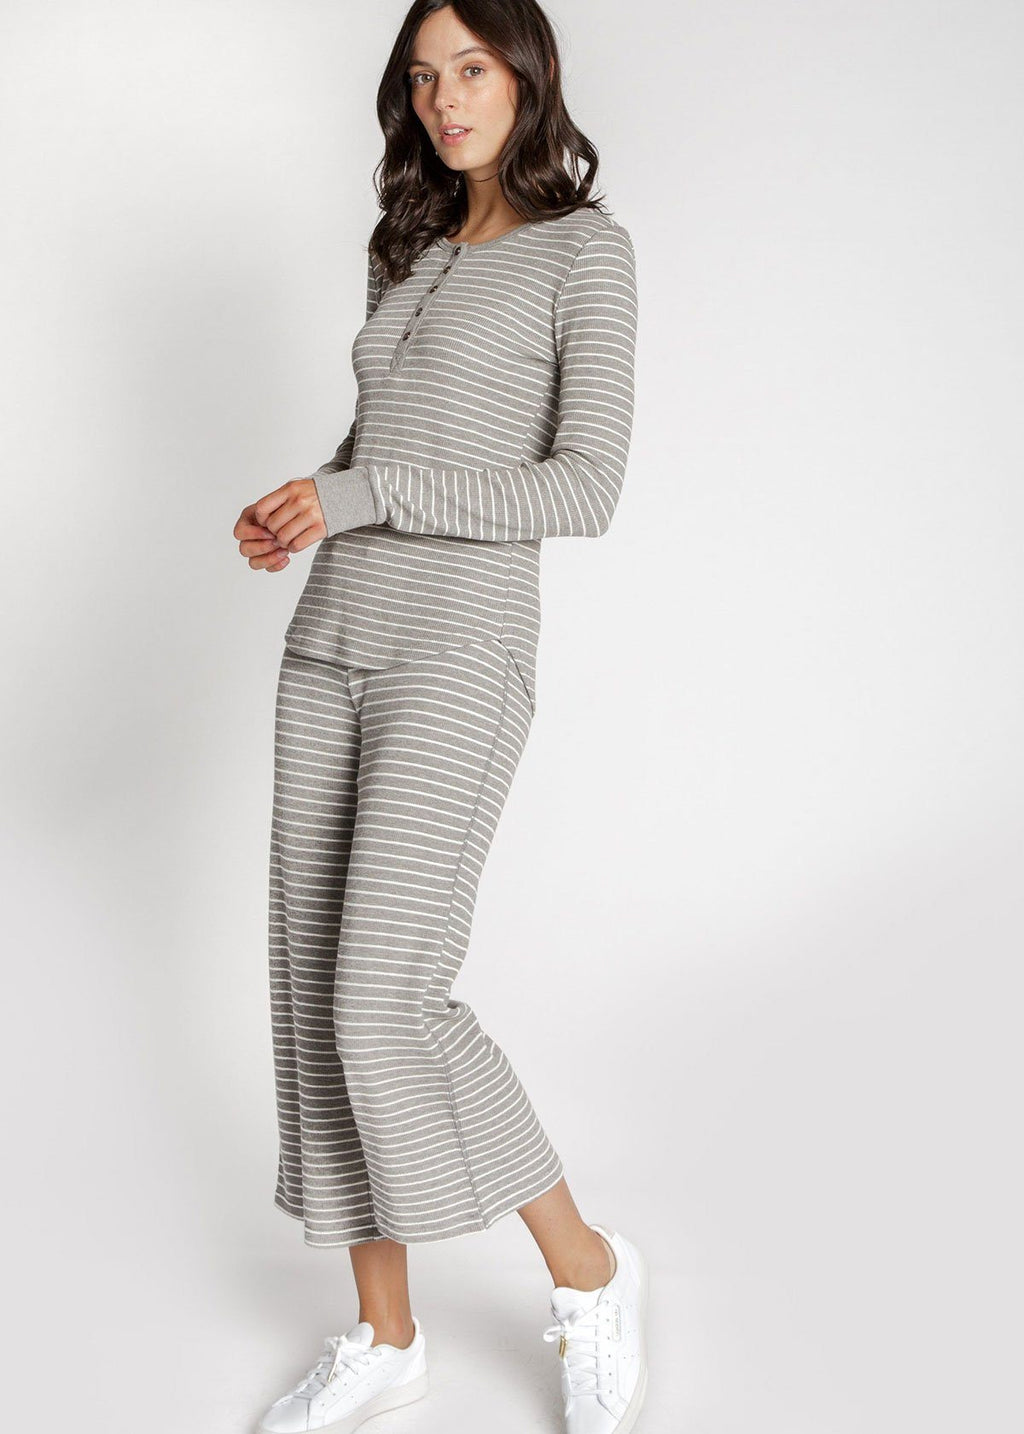 Maeve Thermal Top - Heather Grey Stripe